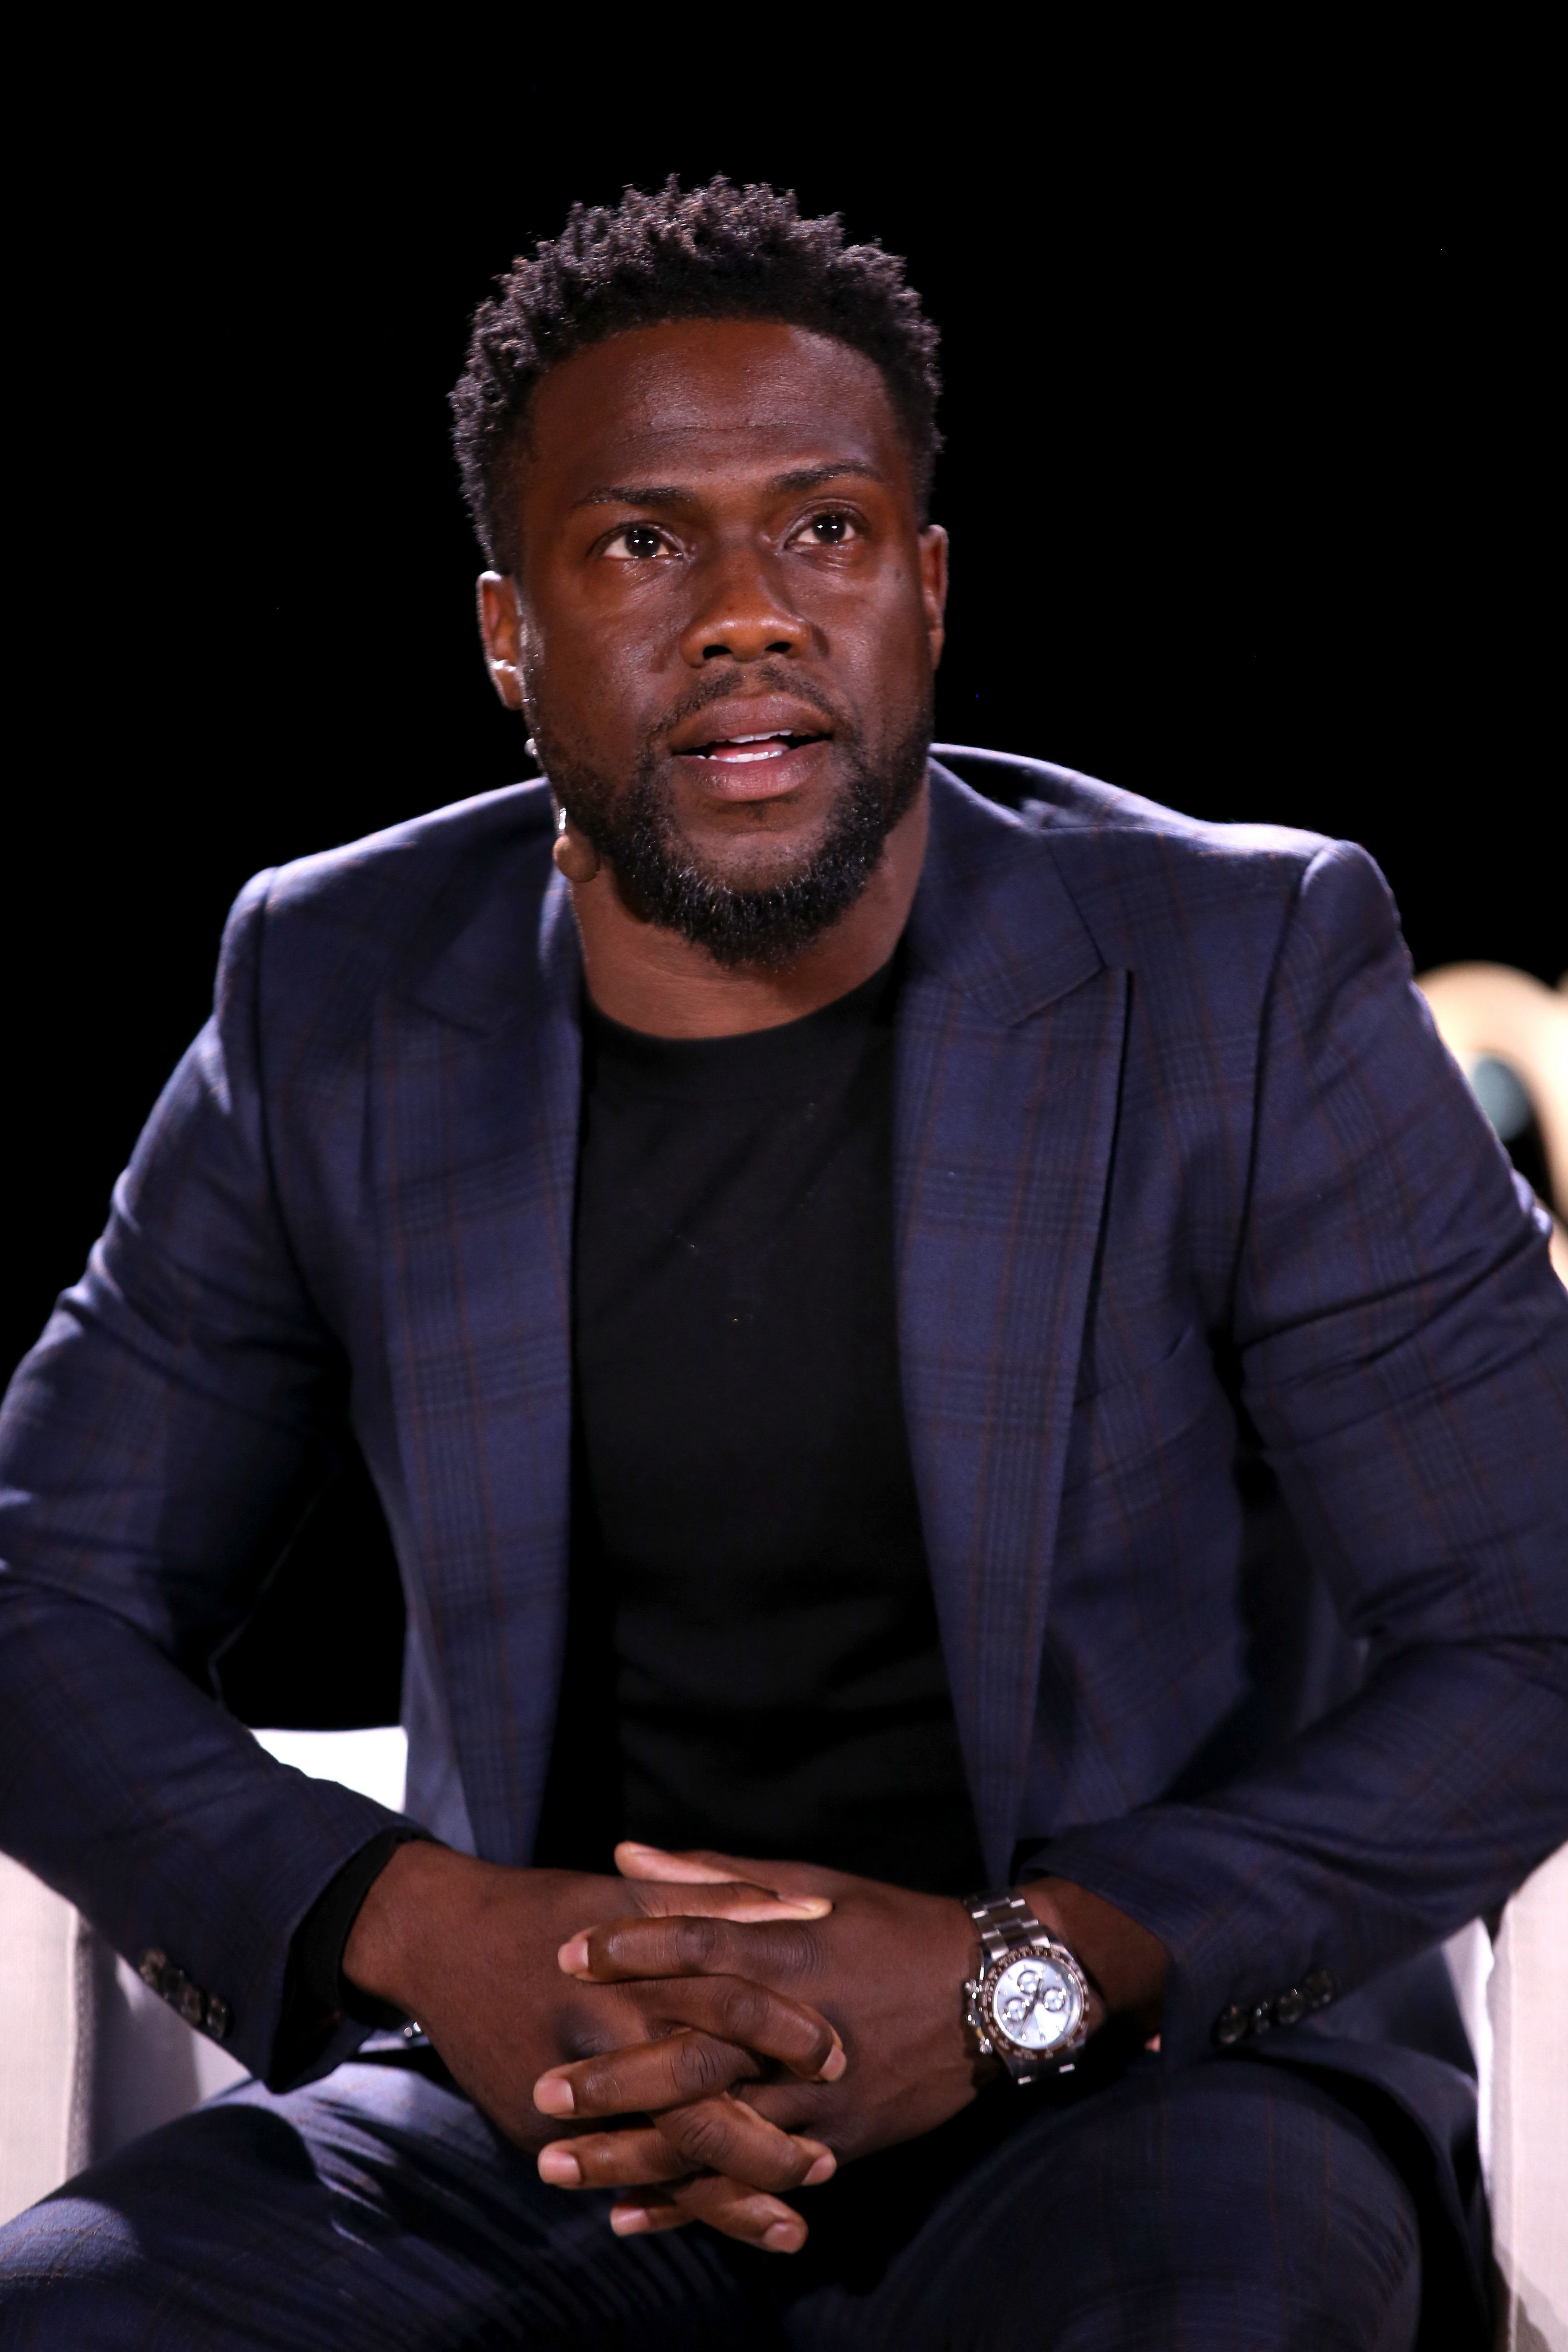 LAGUNA BEACH, CALIFORNIA - NOVEMBER 13: Kevin Hart attends the WSJ Tech D.Live at Montage Laguna Beach on November 13, 2018 in Laguna Beach, California. (Photo by Phillip Faraone/Getty Images for The Wall Street Journal and WSJ. Magazine)